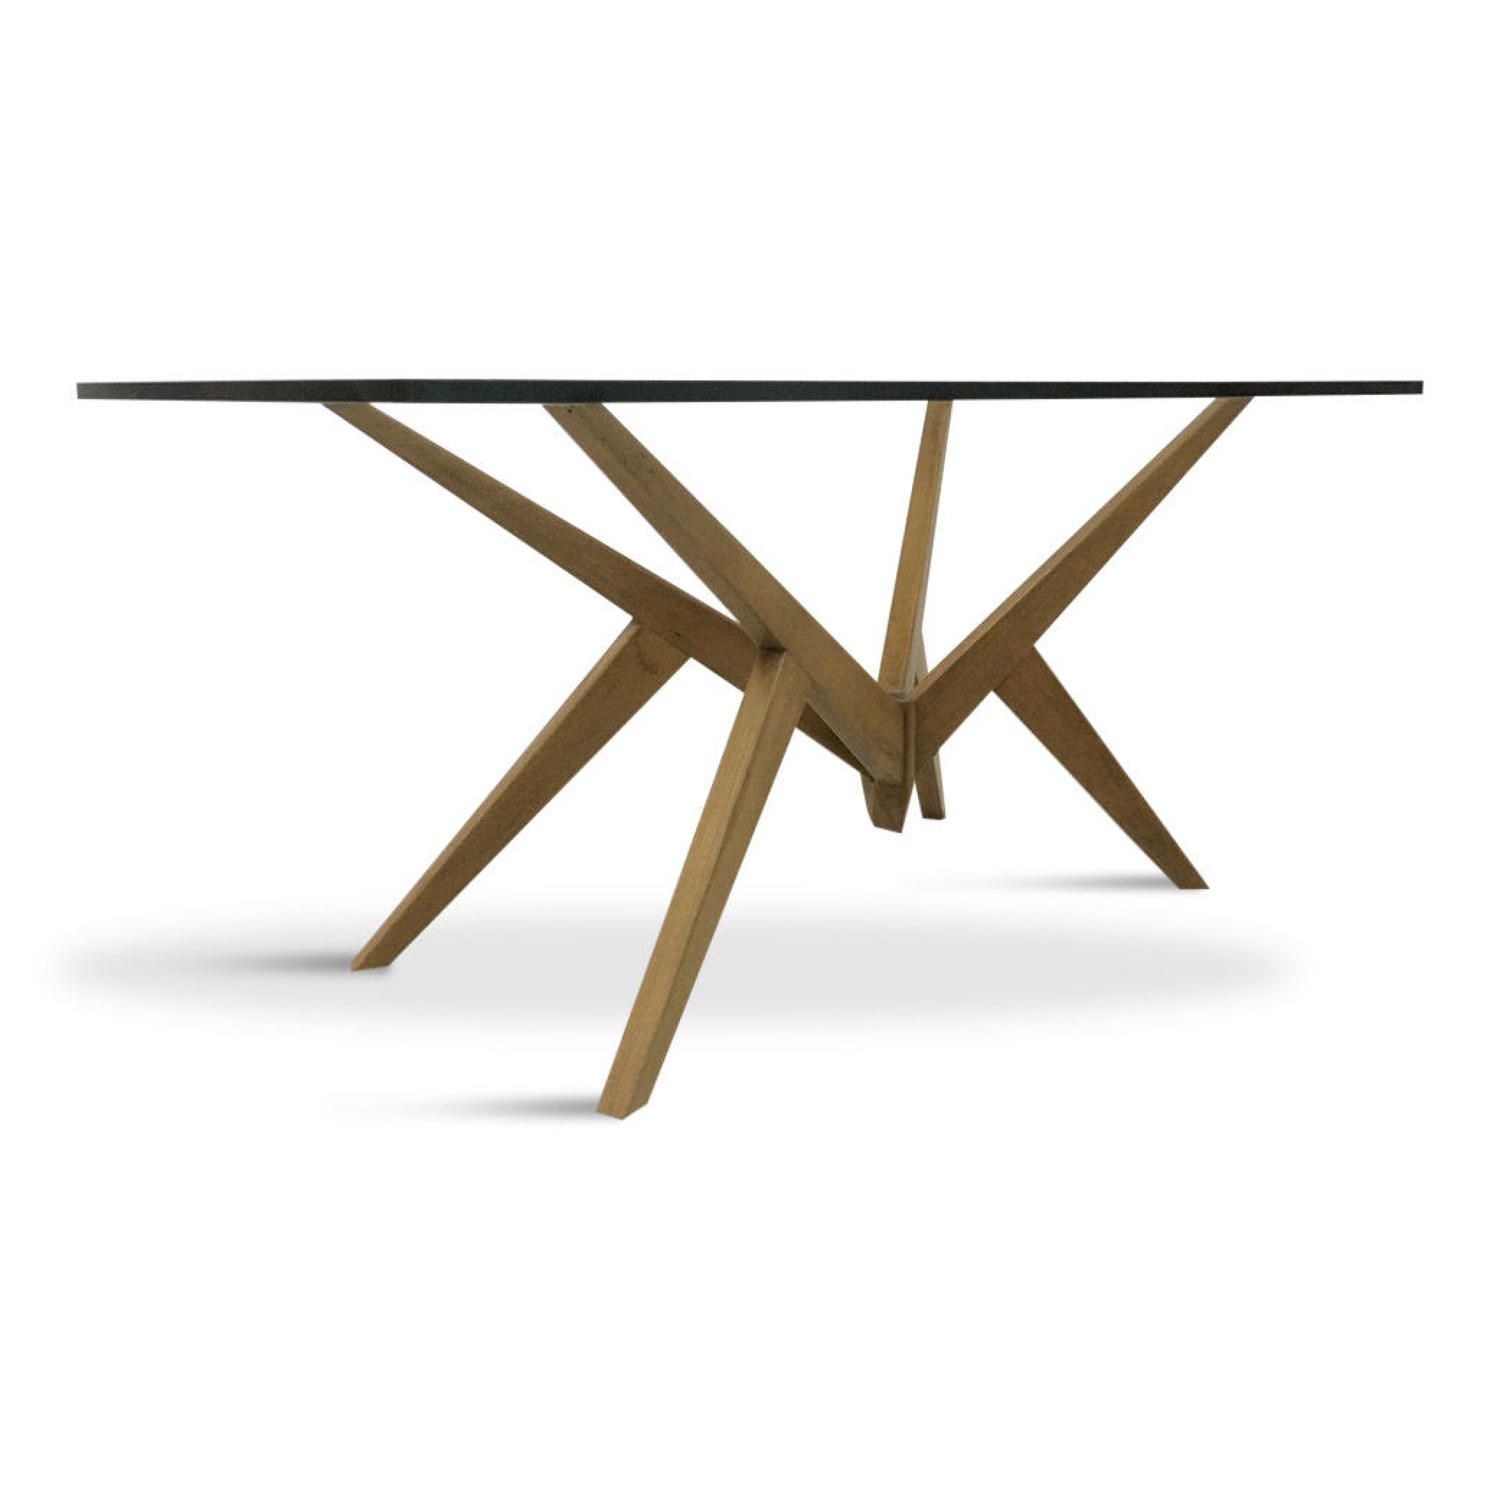 1950s Italian angular coffee table